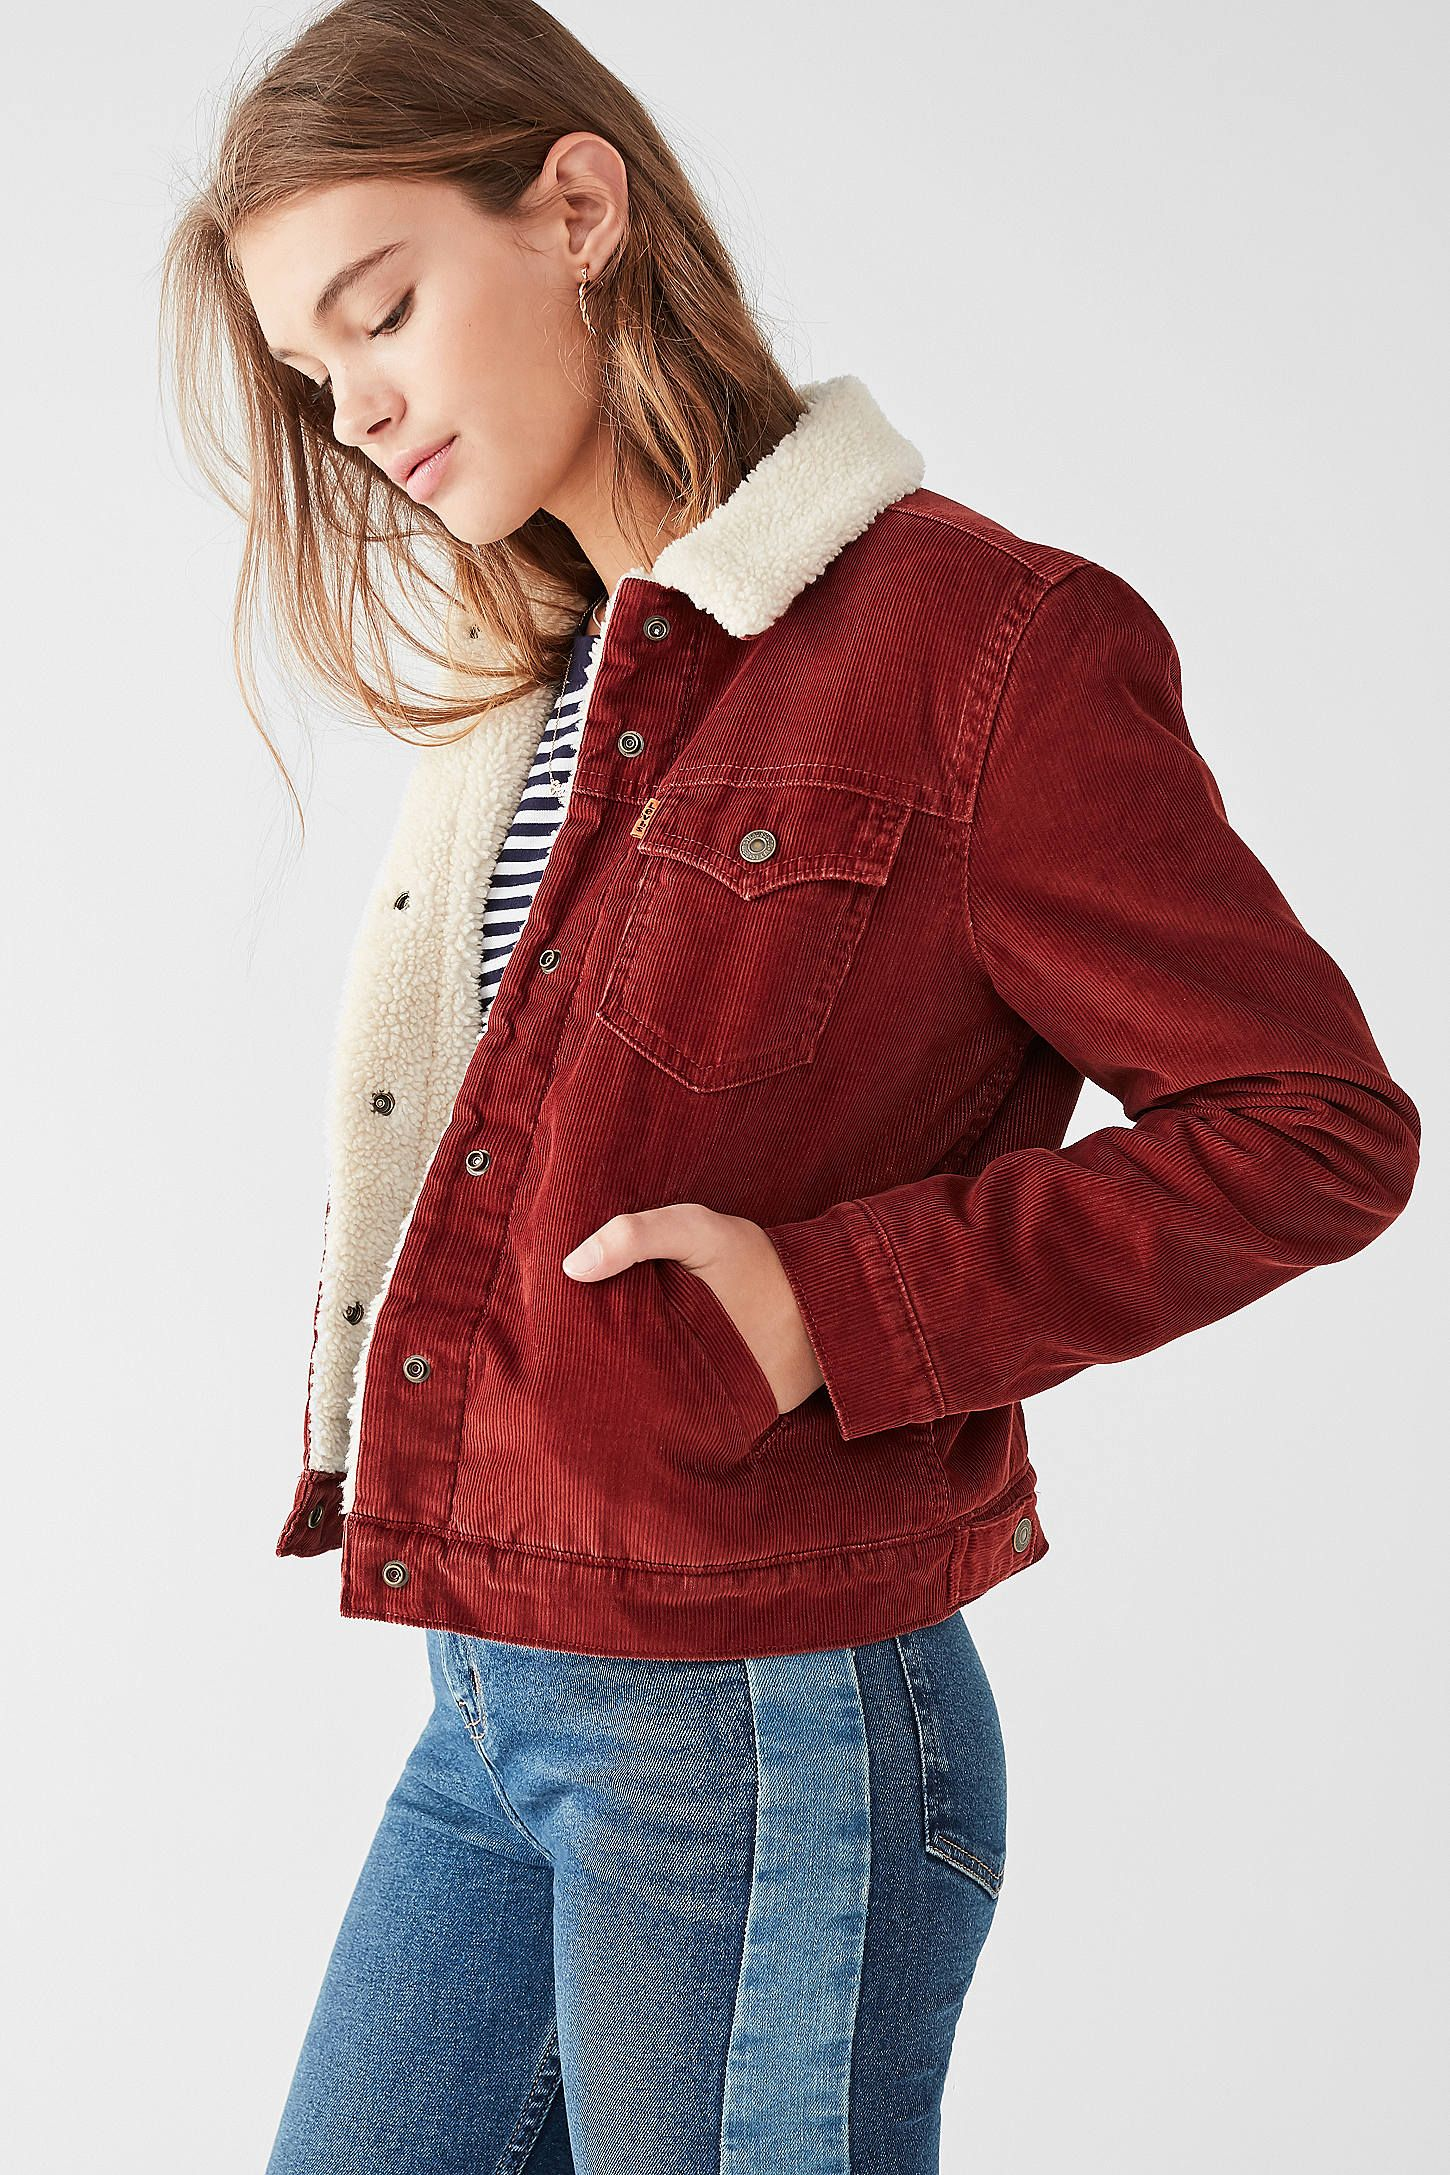 Why Choose Online Store For Winter Jacket?